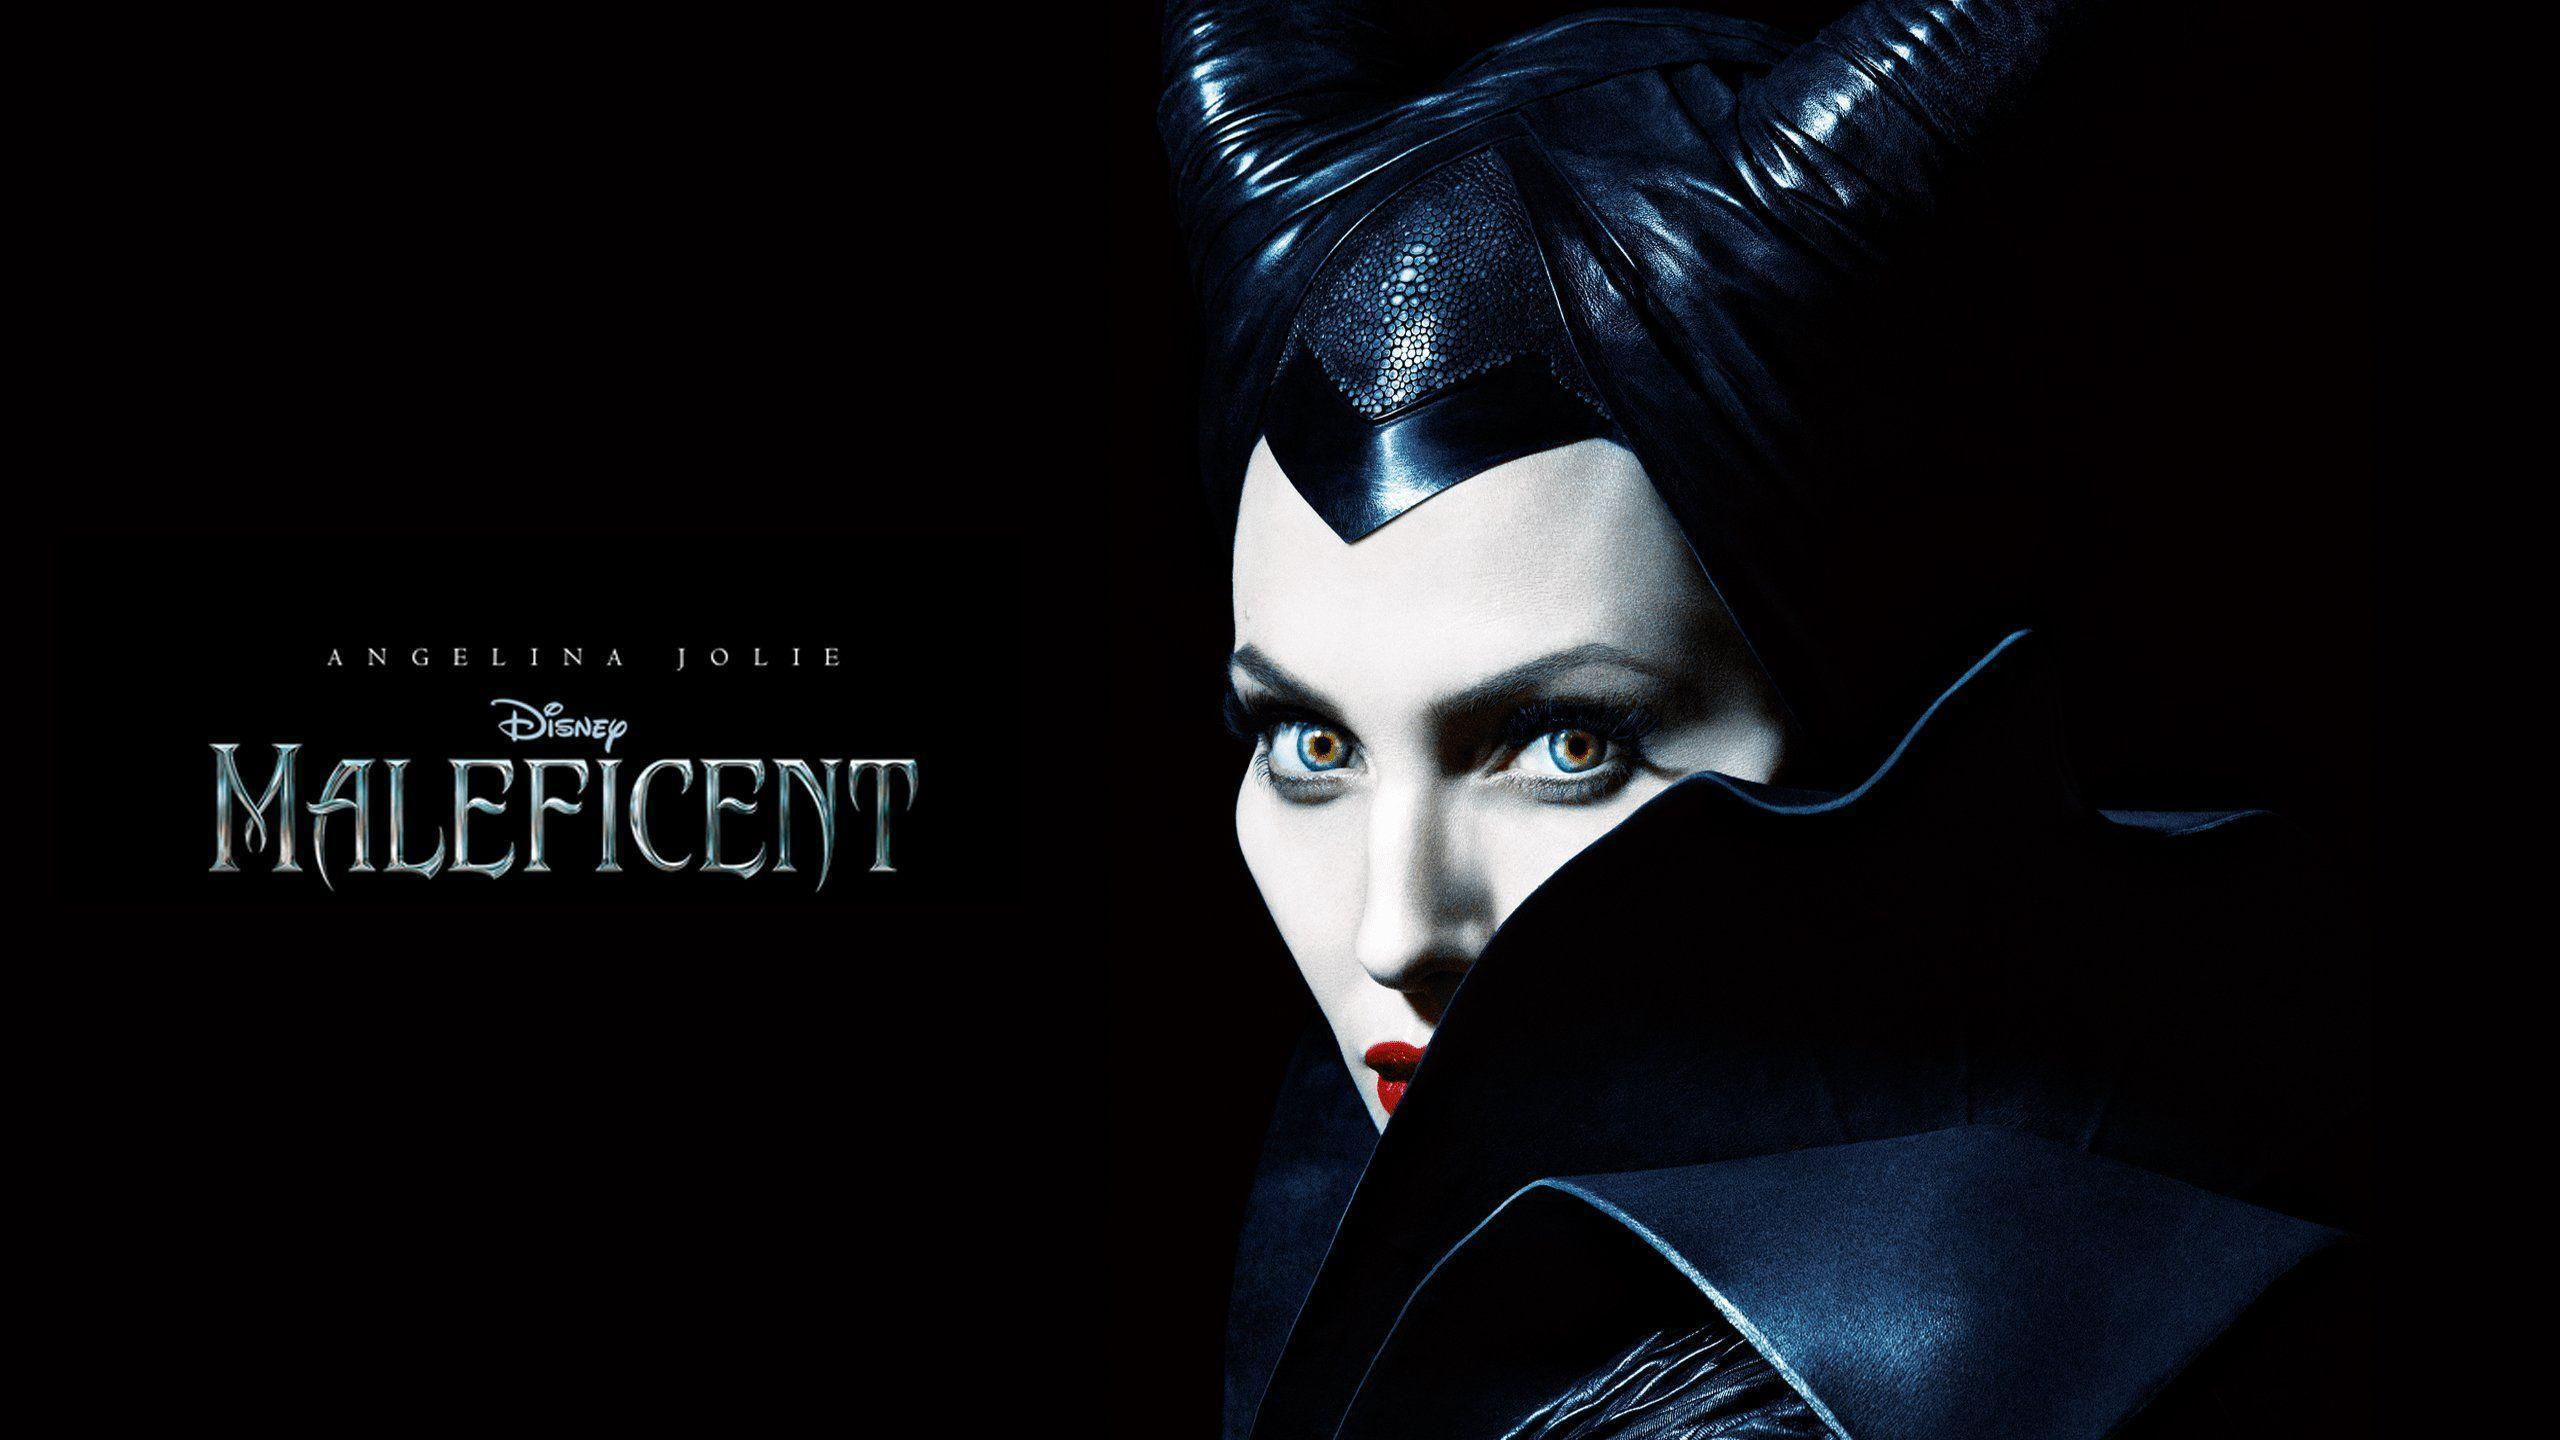 Wallpapers Movie Maleficent Wallpapers Laptop